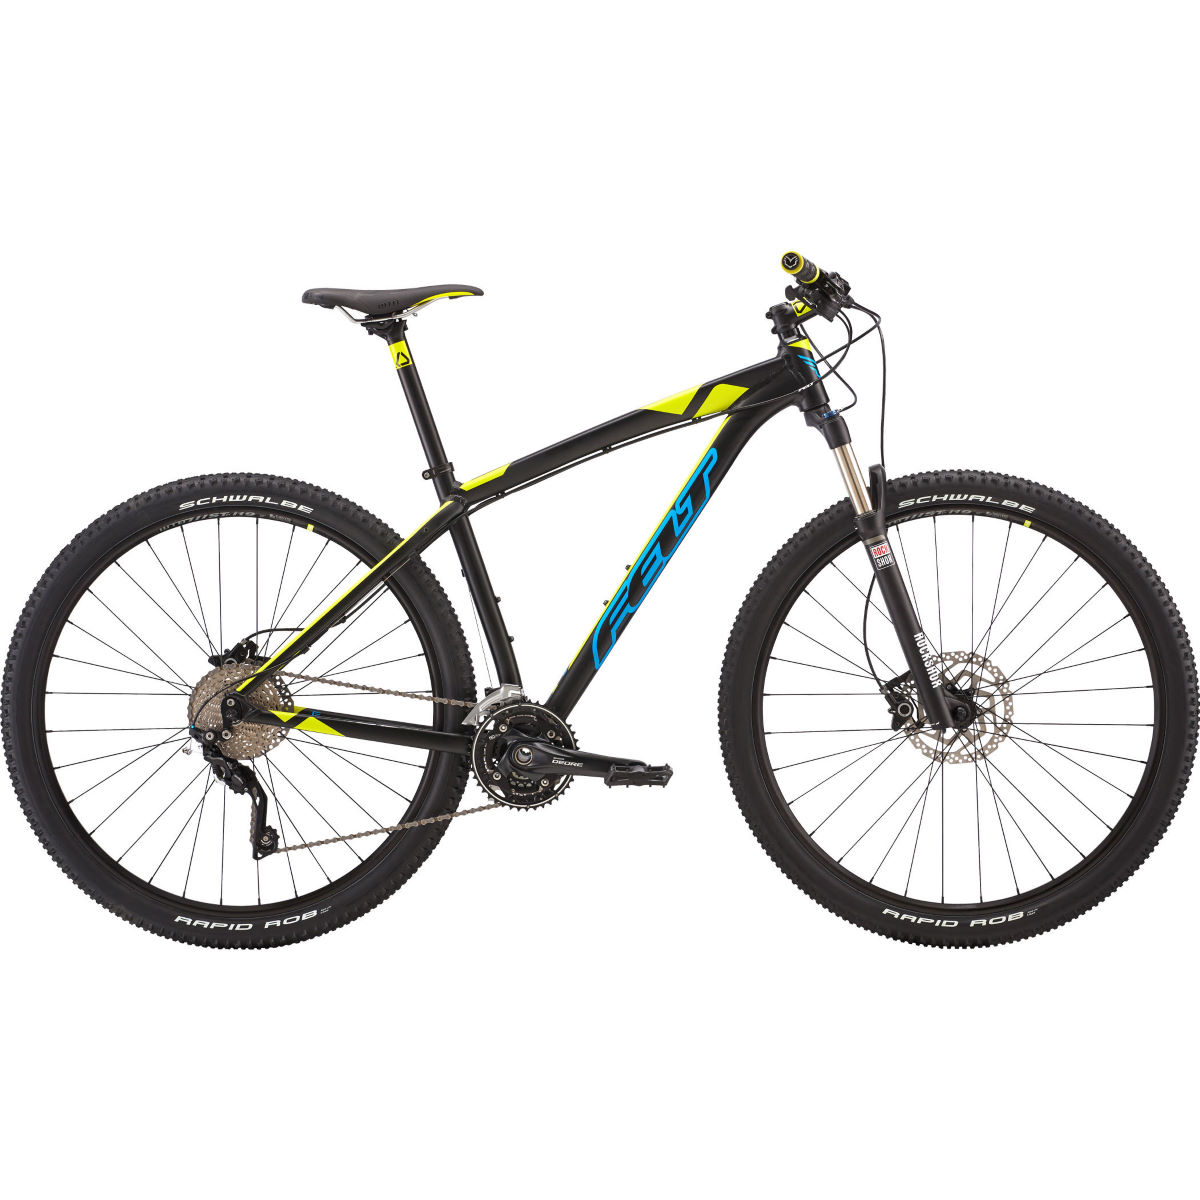 VTT Felt Nine 50 (2017) - 14'' Matte Black/Blue VTT semi-rigides